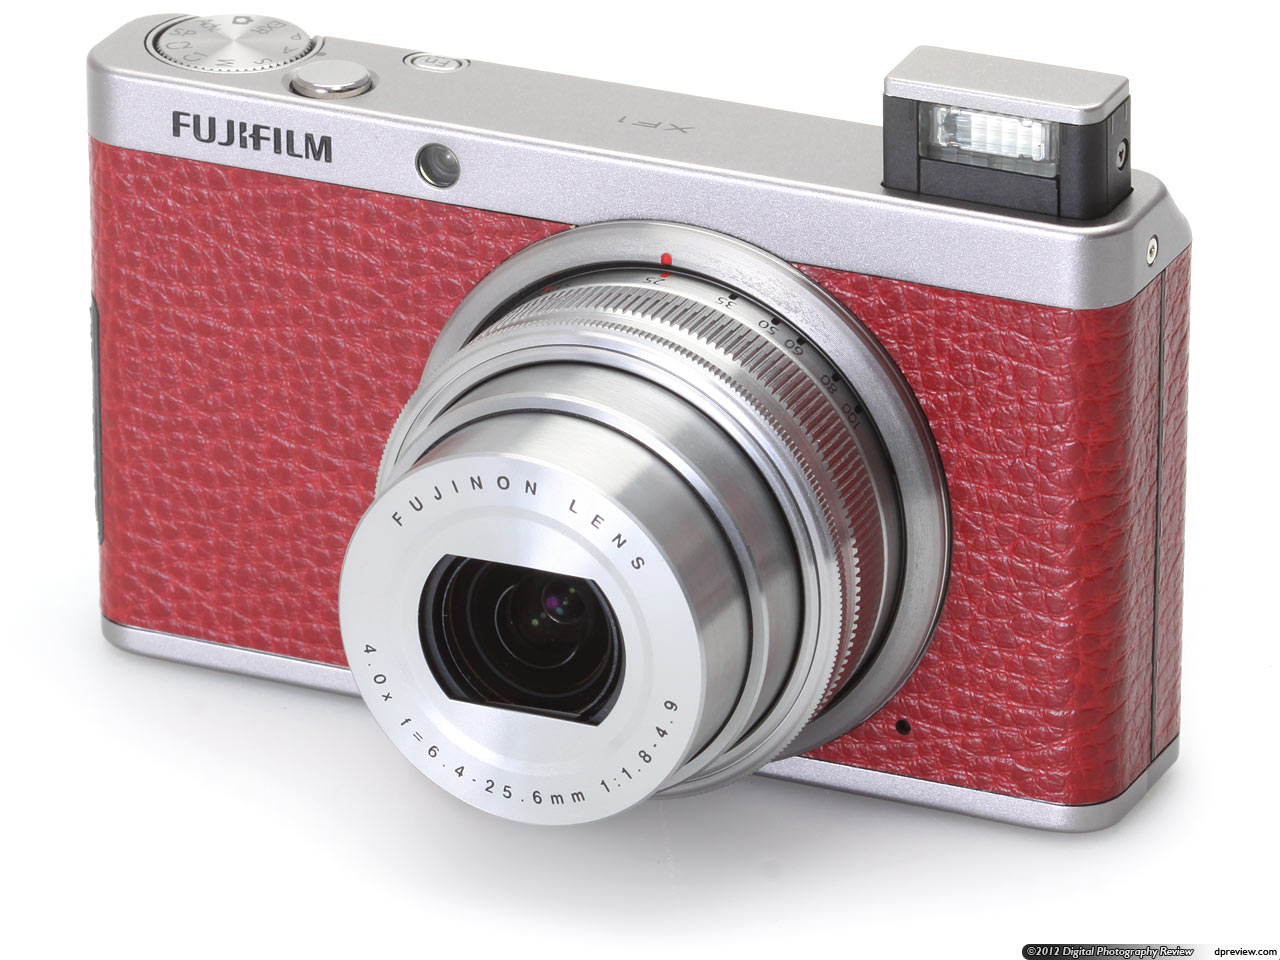 fujifilm xf1 hands on preview digital photography review rh dpreview com XF1 vs RX100 Fuji XF1